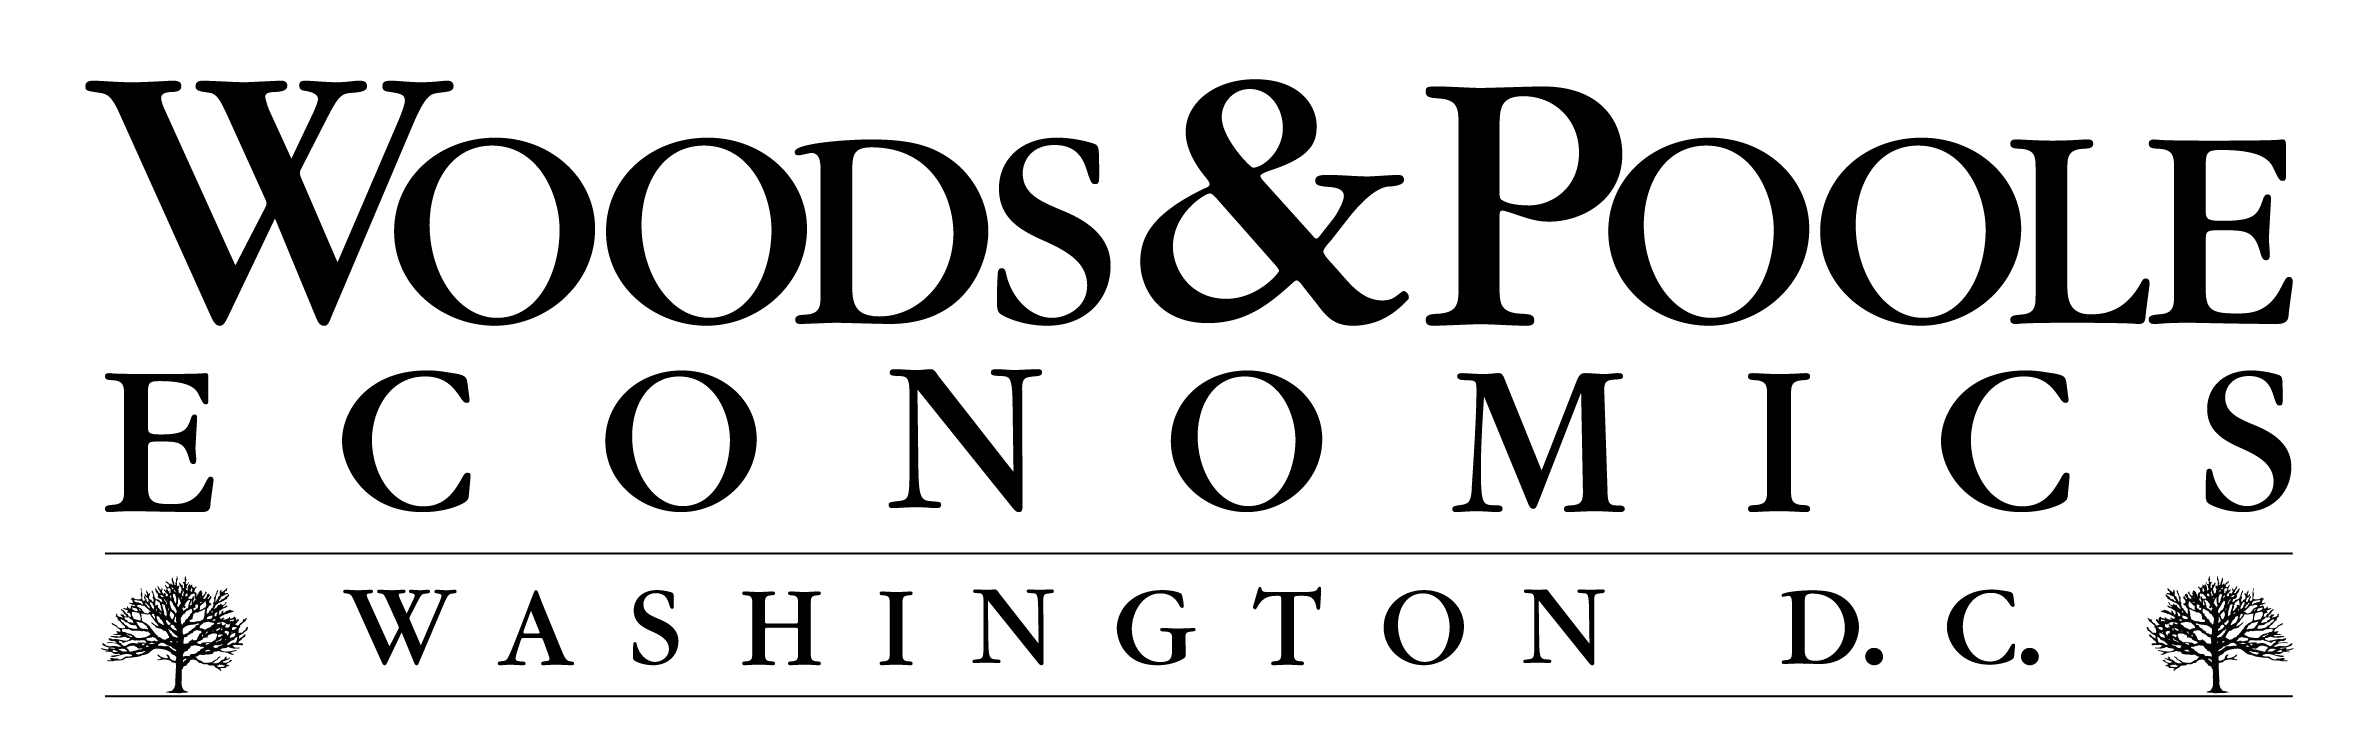 KINSTON NC (FIPS 28820) | Woods & Poole Economics, Inc